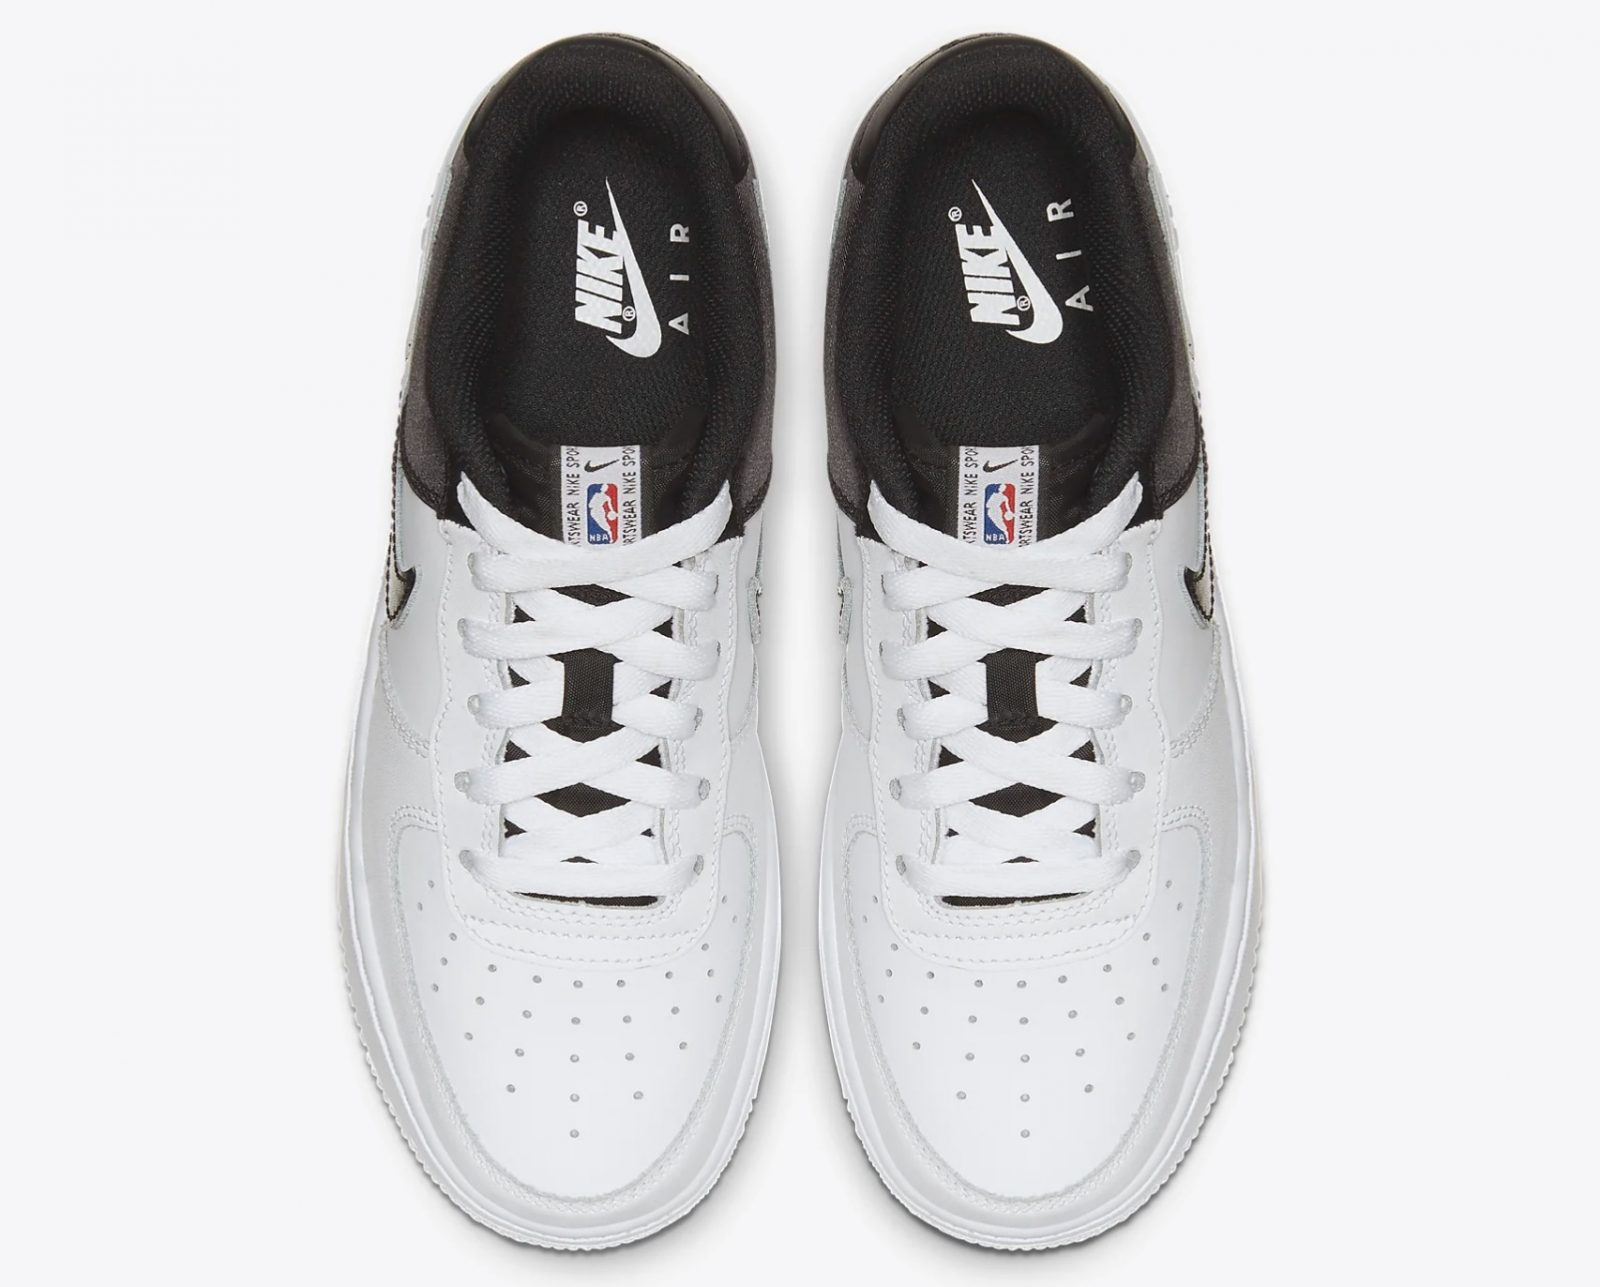 Nike Air Force 1 NBA Low CK0502-100 laces